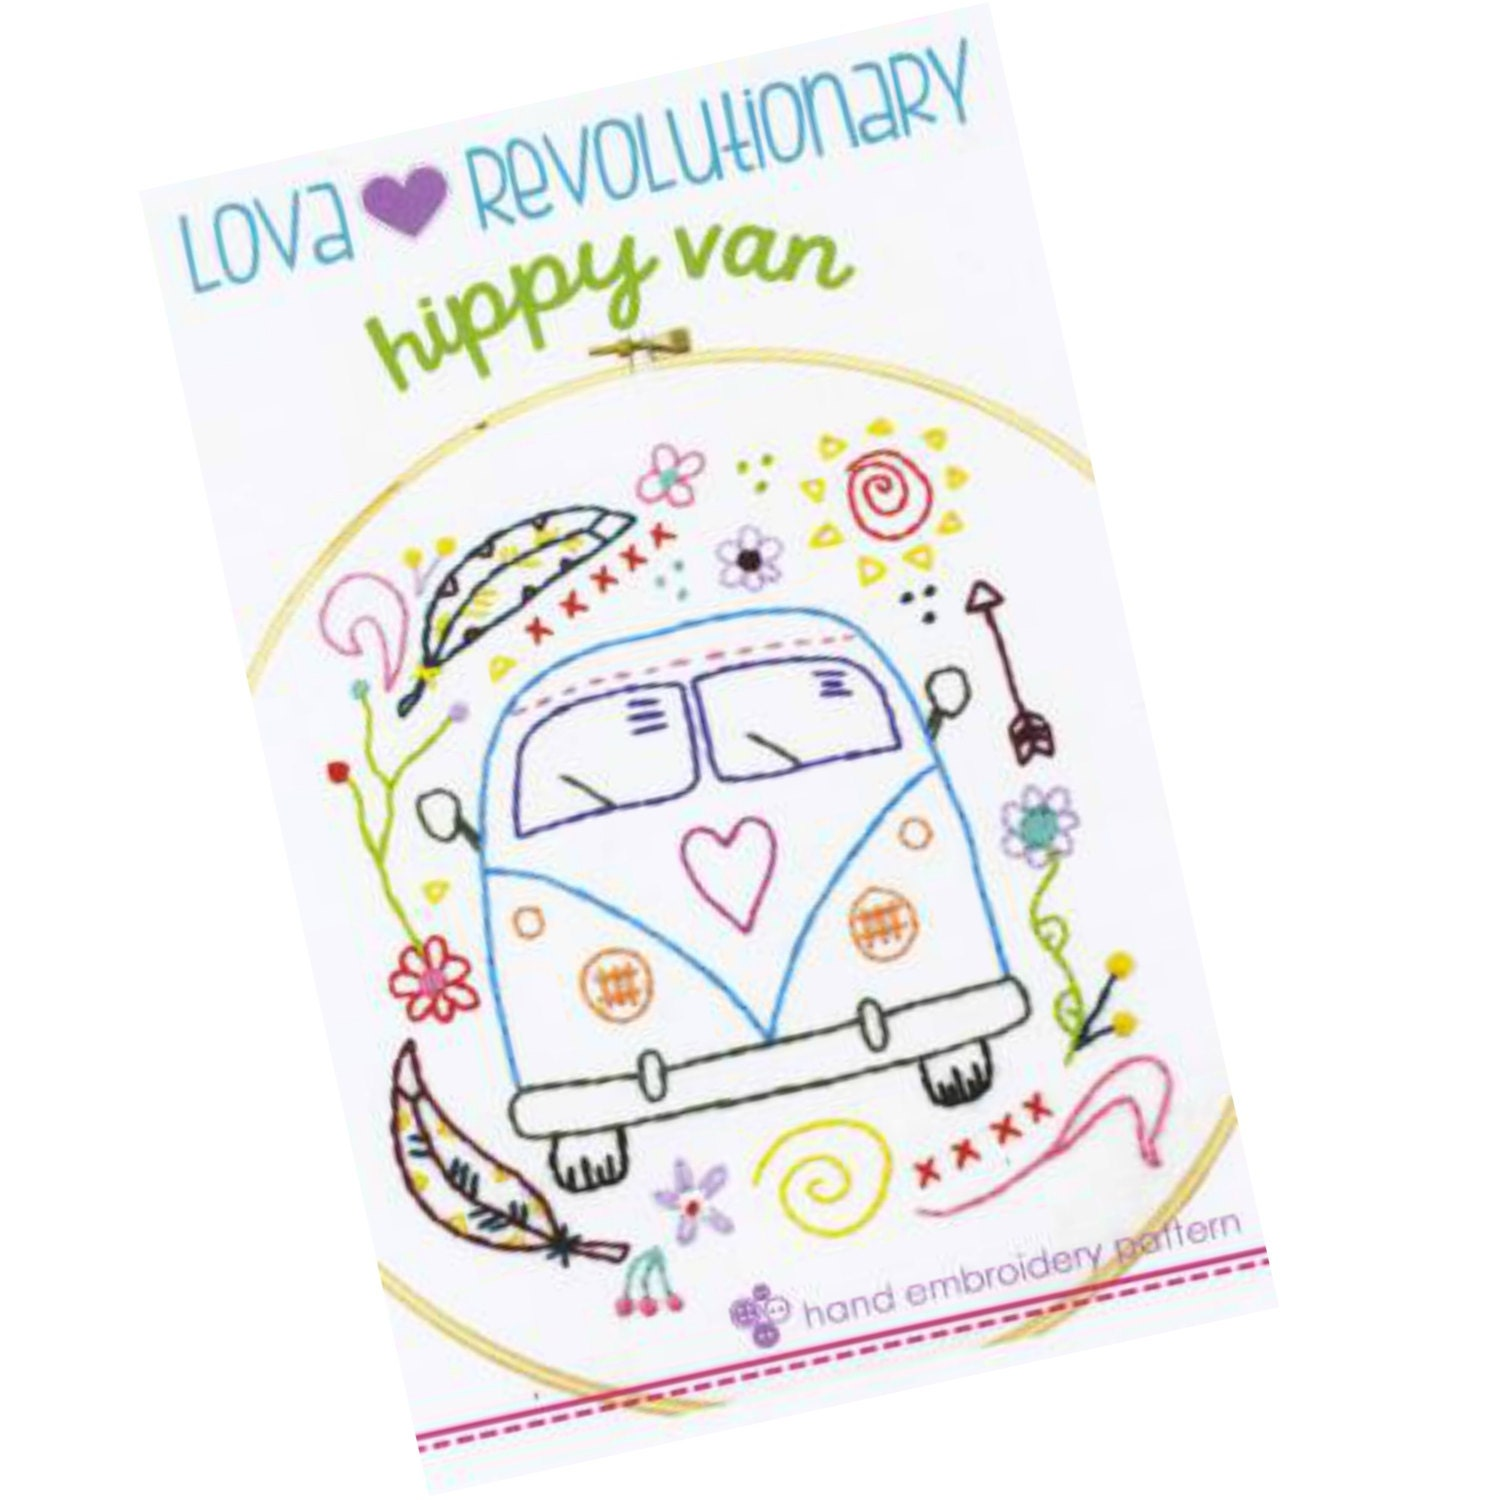 Vw van embroidery pattern modern hand by